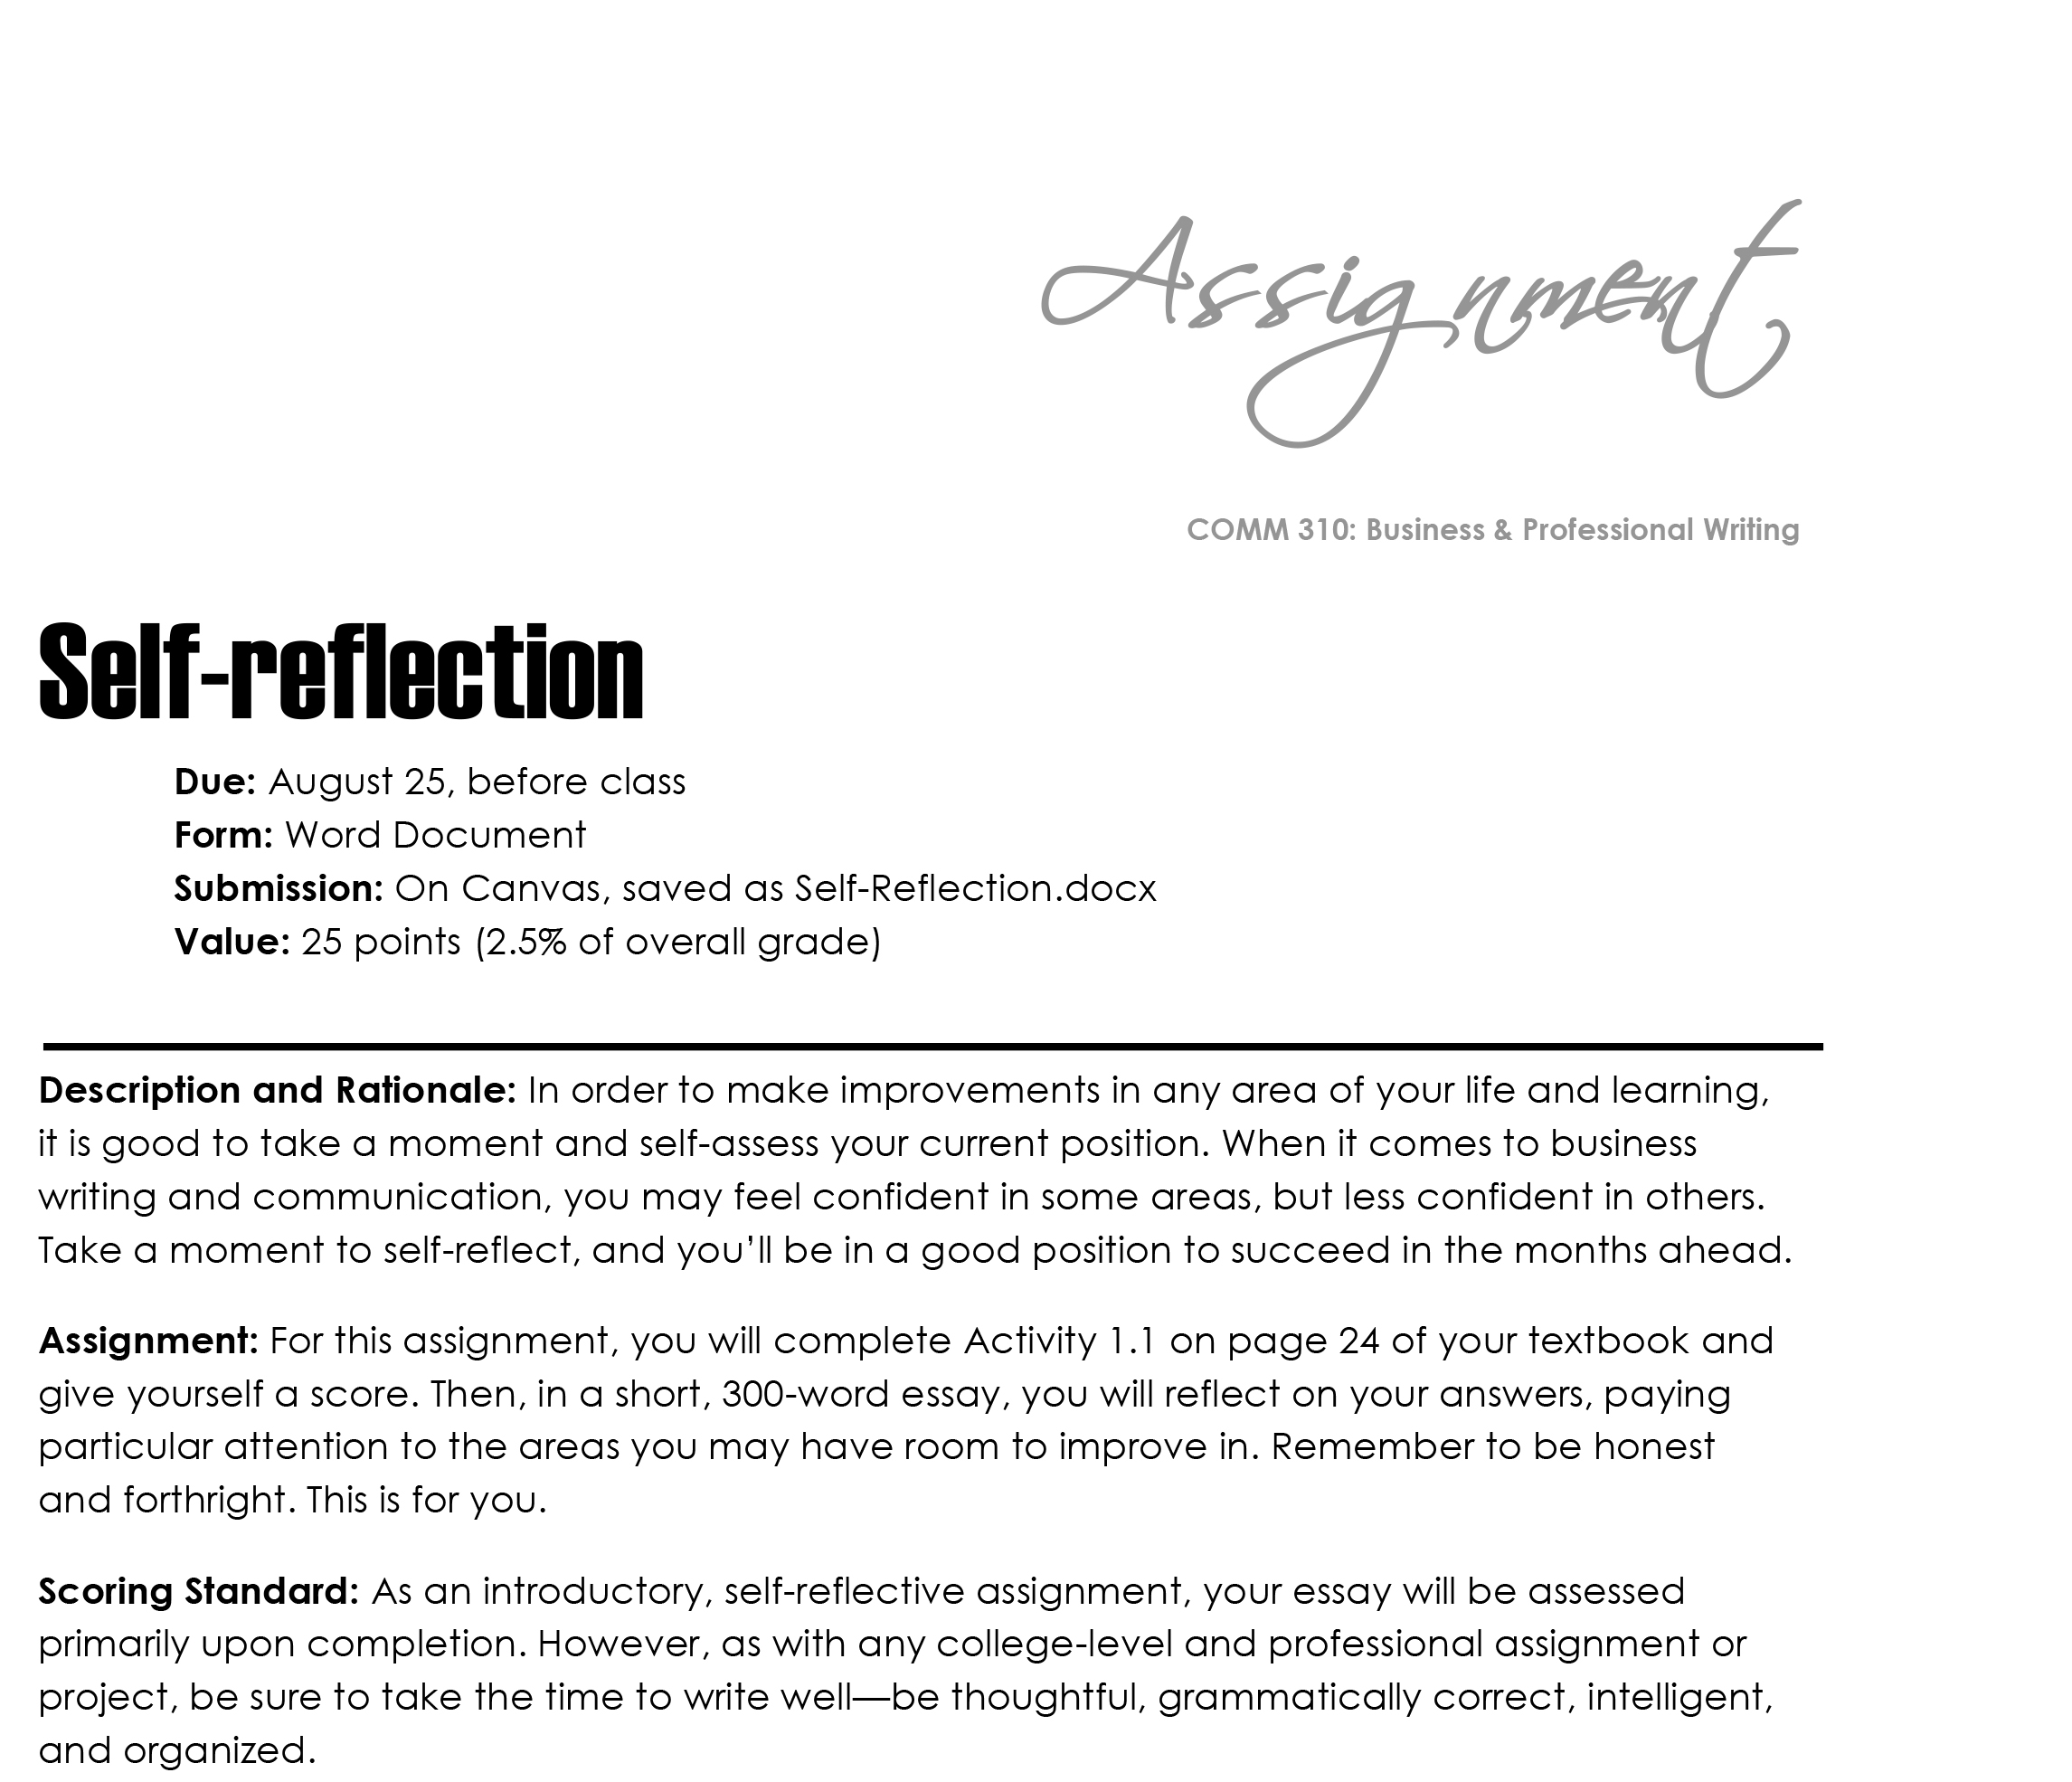 How to write a selfassessment reflective essay